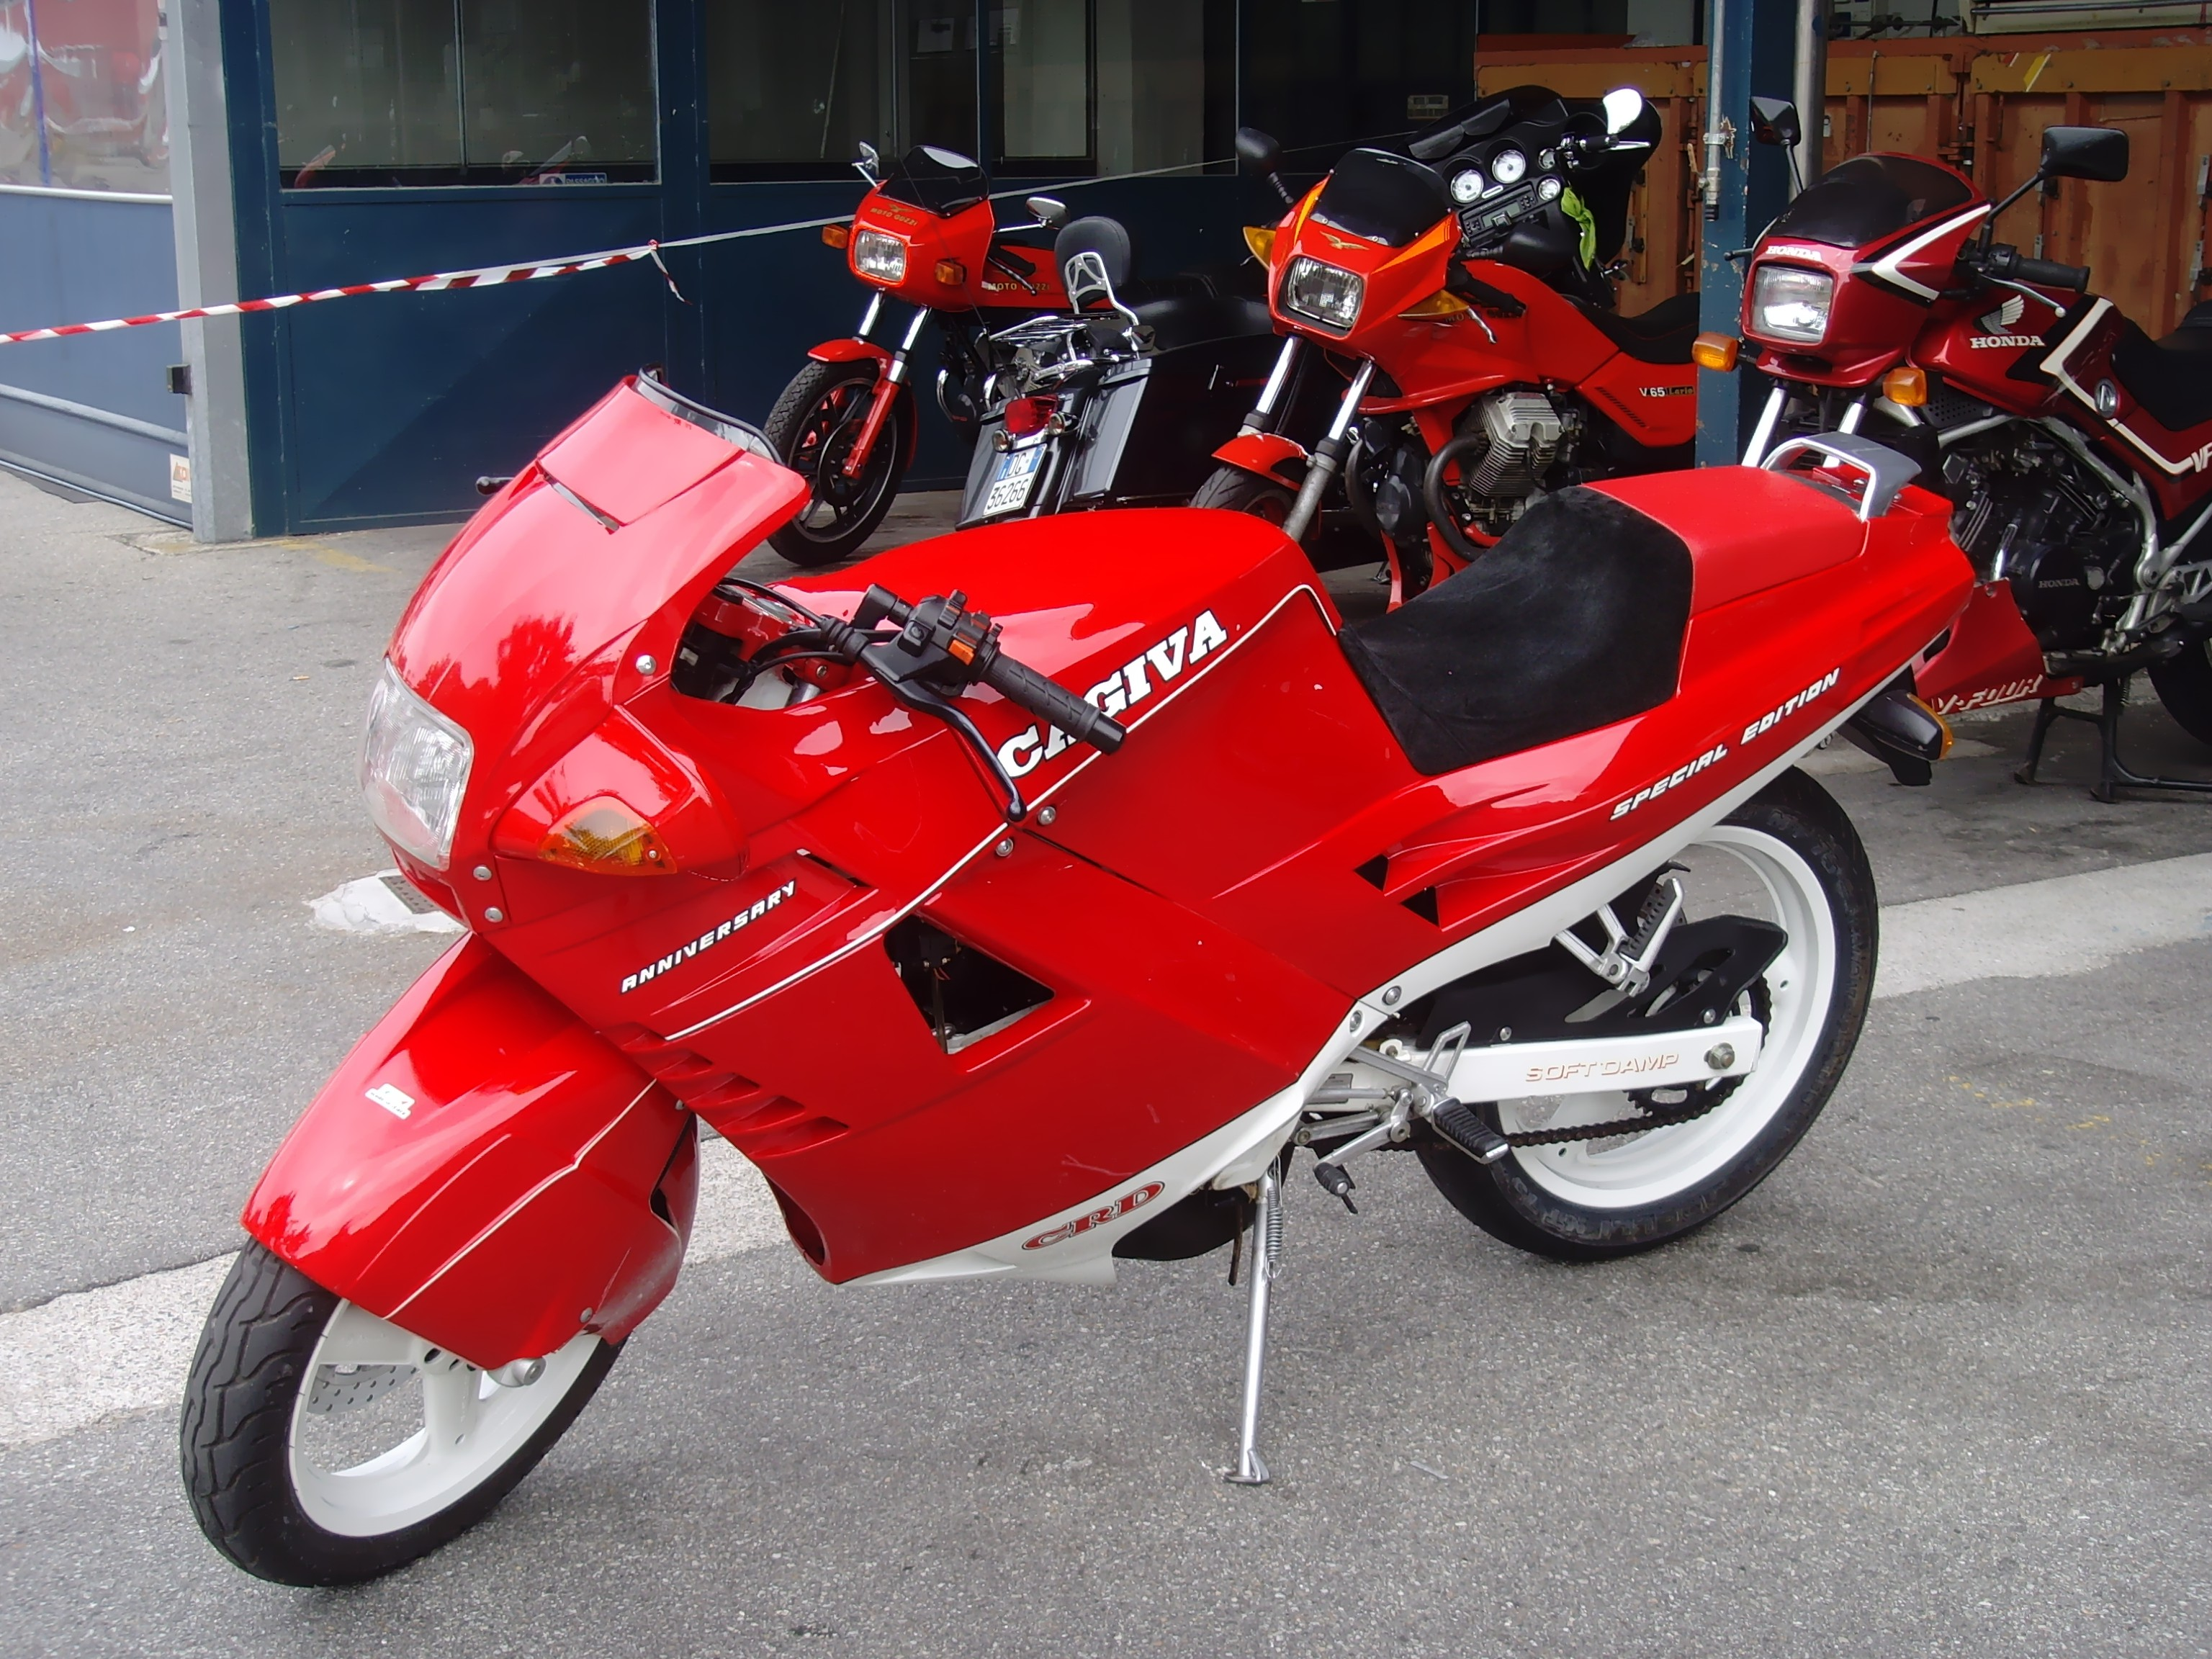 Cagiva images #77591